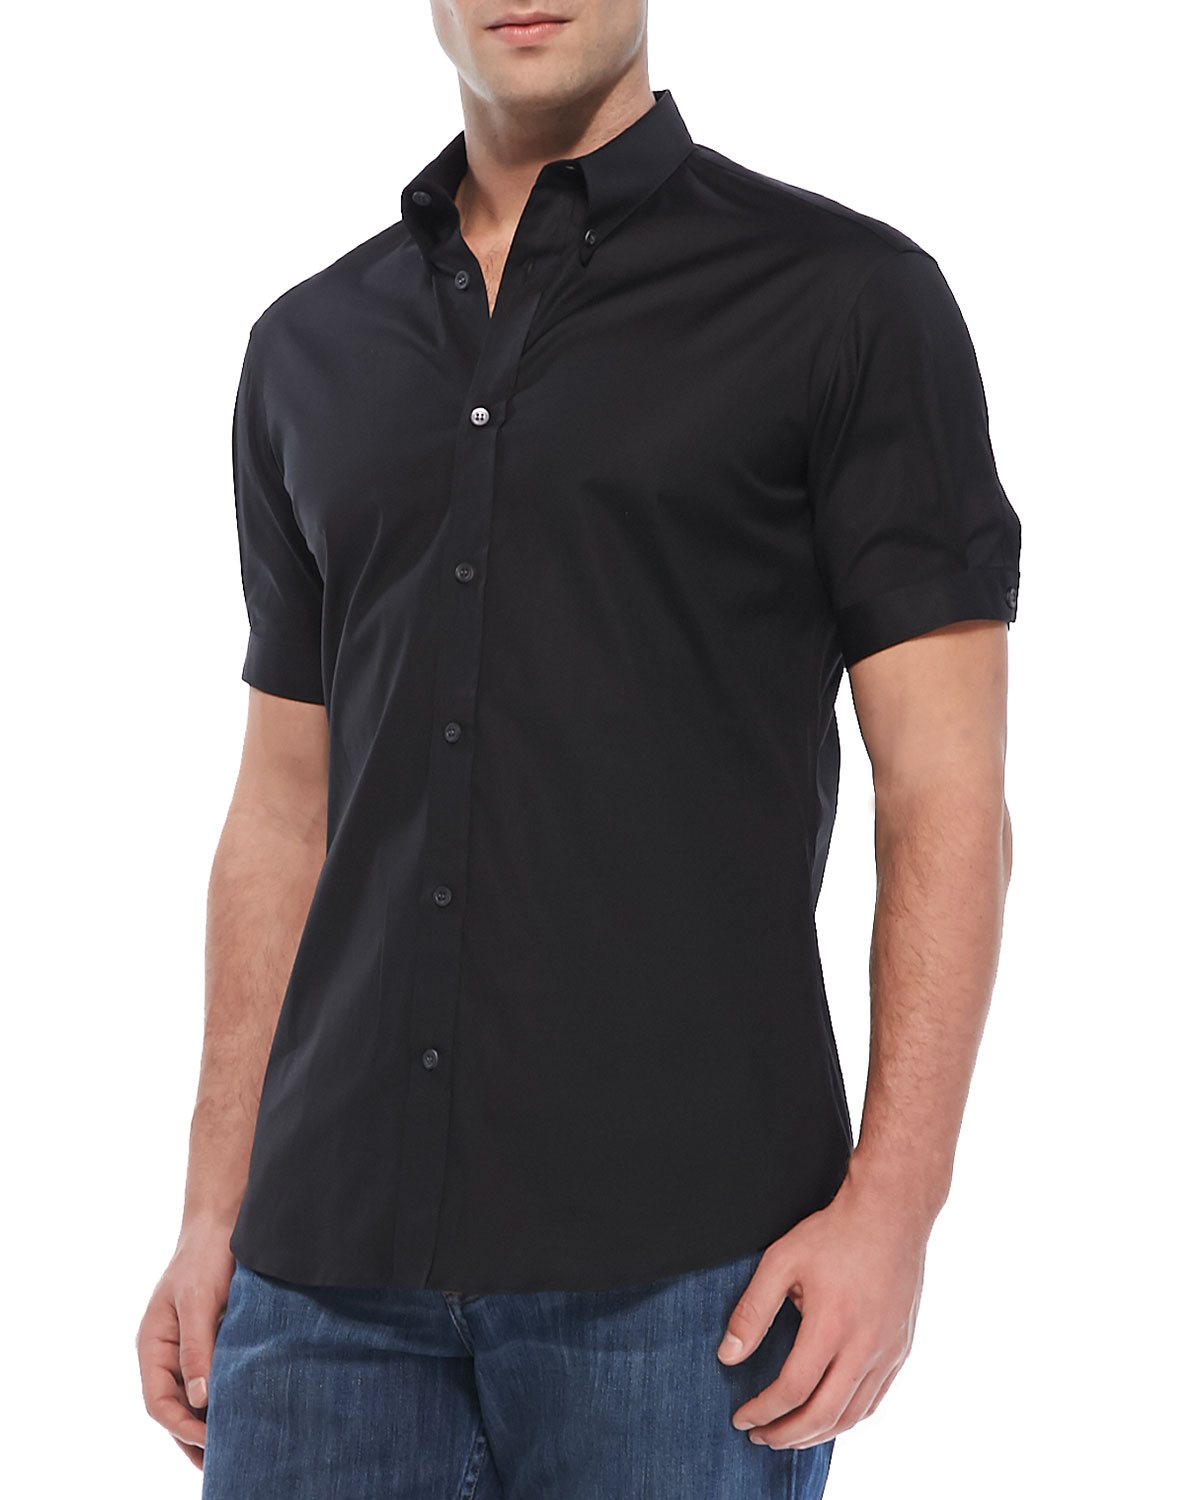 Alexander mcqueen Short-Sleeve Button-Down Shirt in Black for Men ...